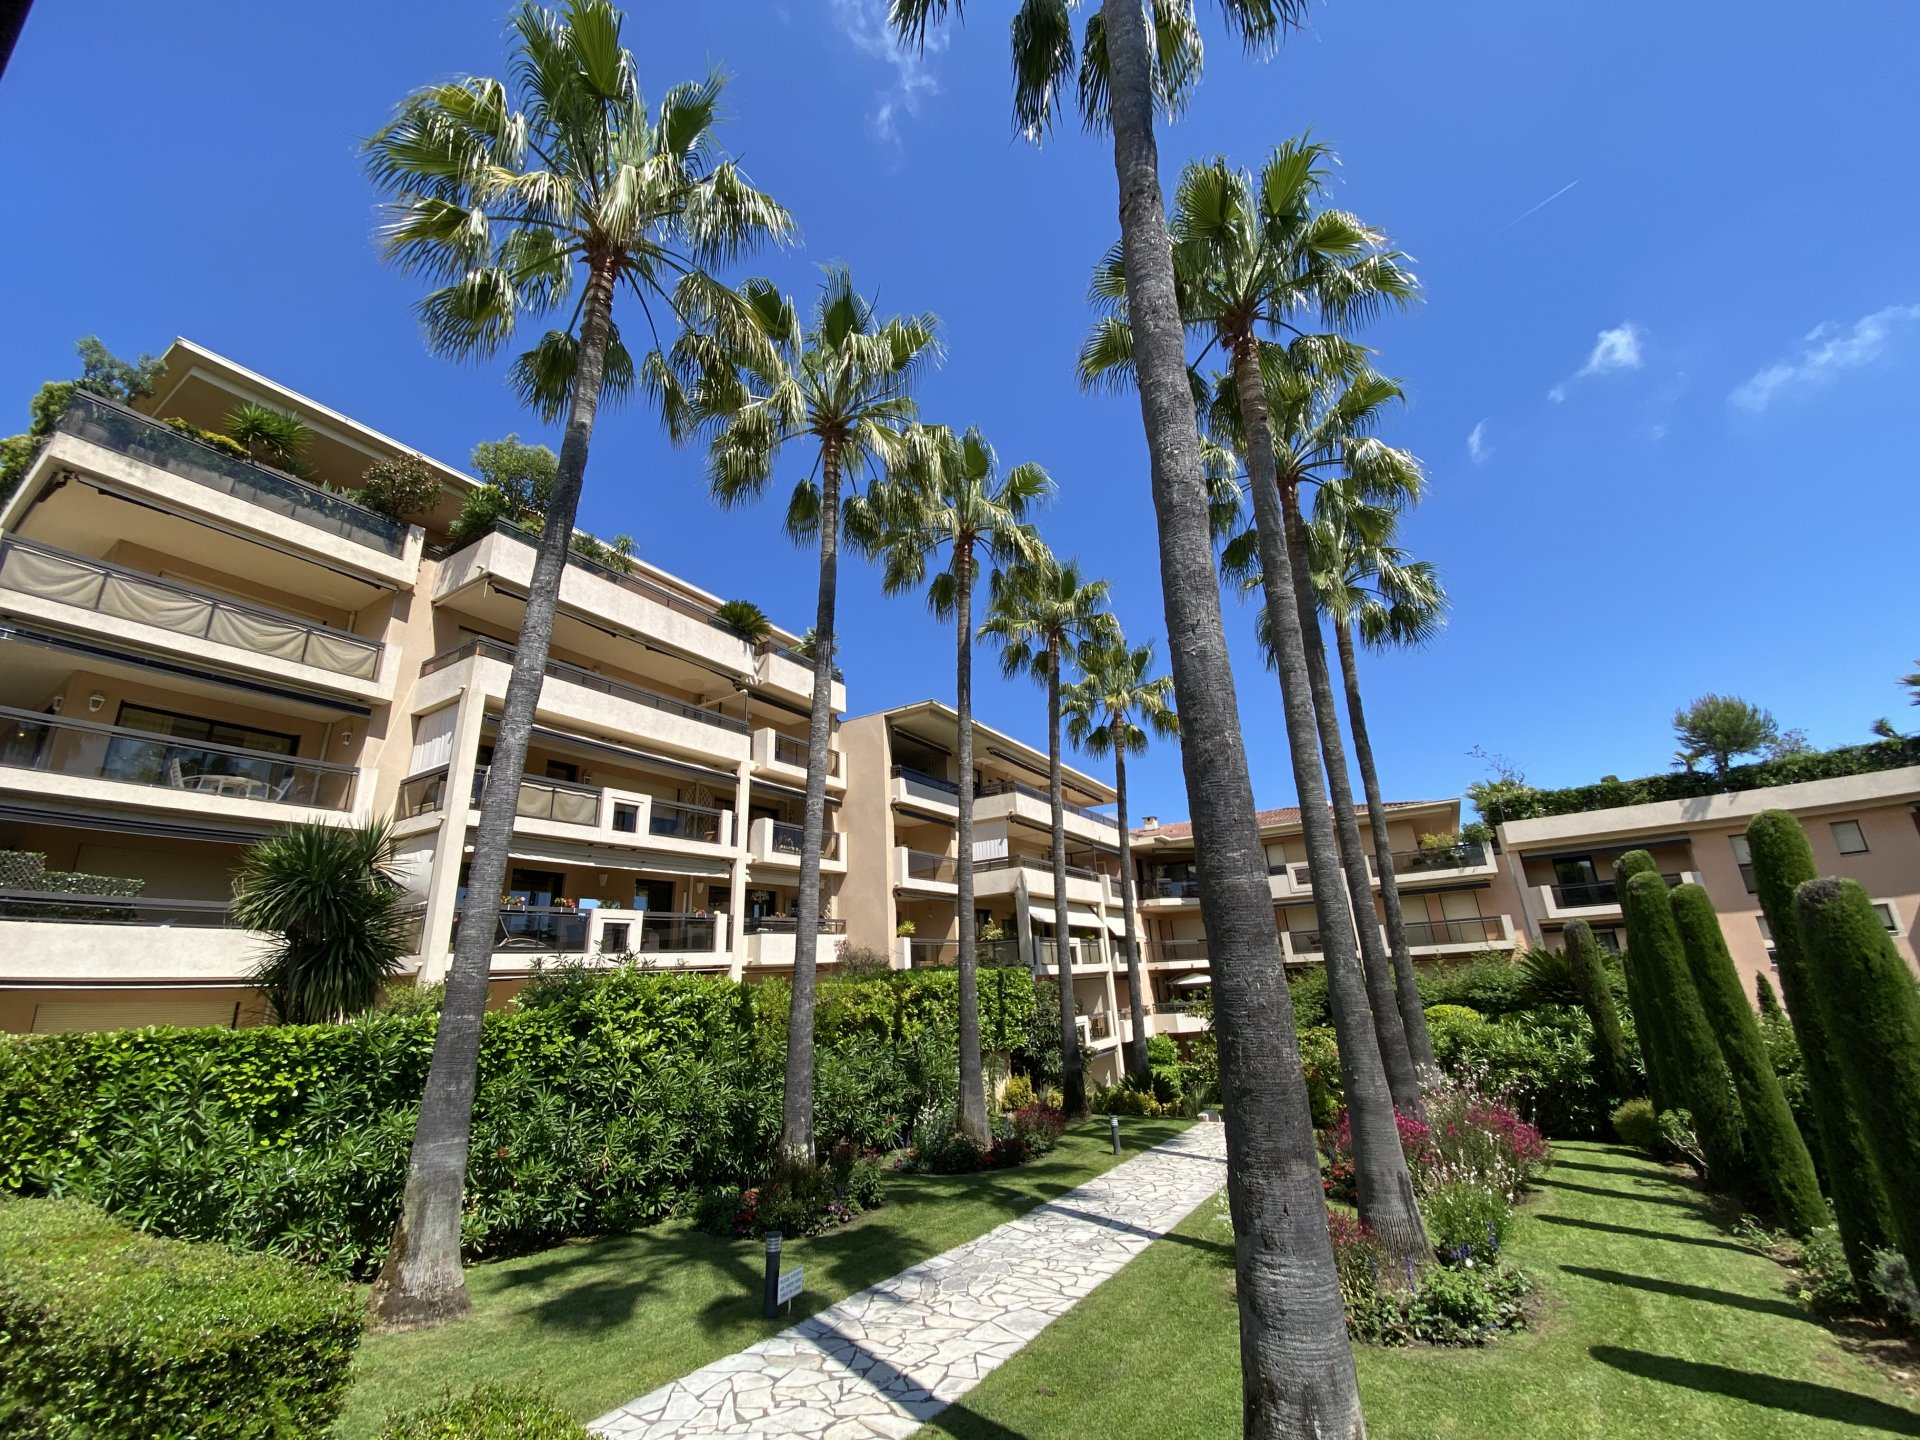 CANNES SALE 2 ROOM FLAT RESIDENCE STANDING GRANDE TERRASSE OUEST